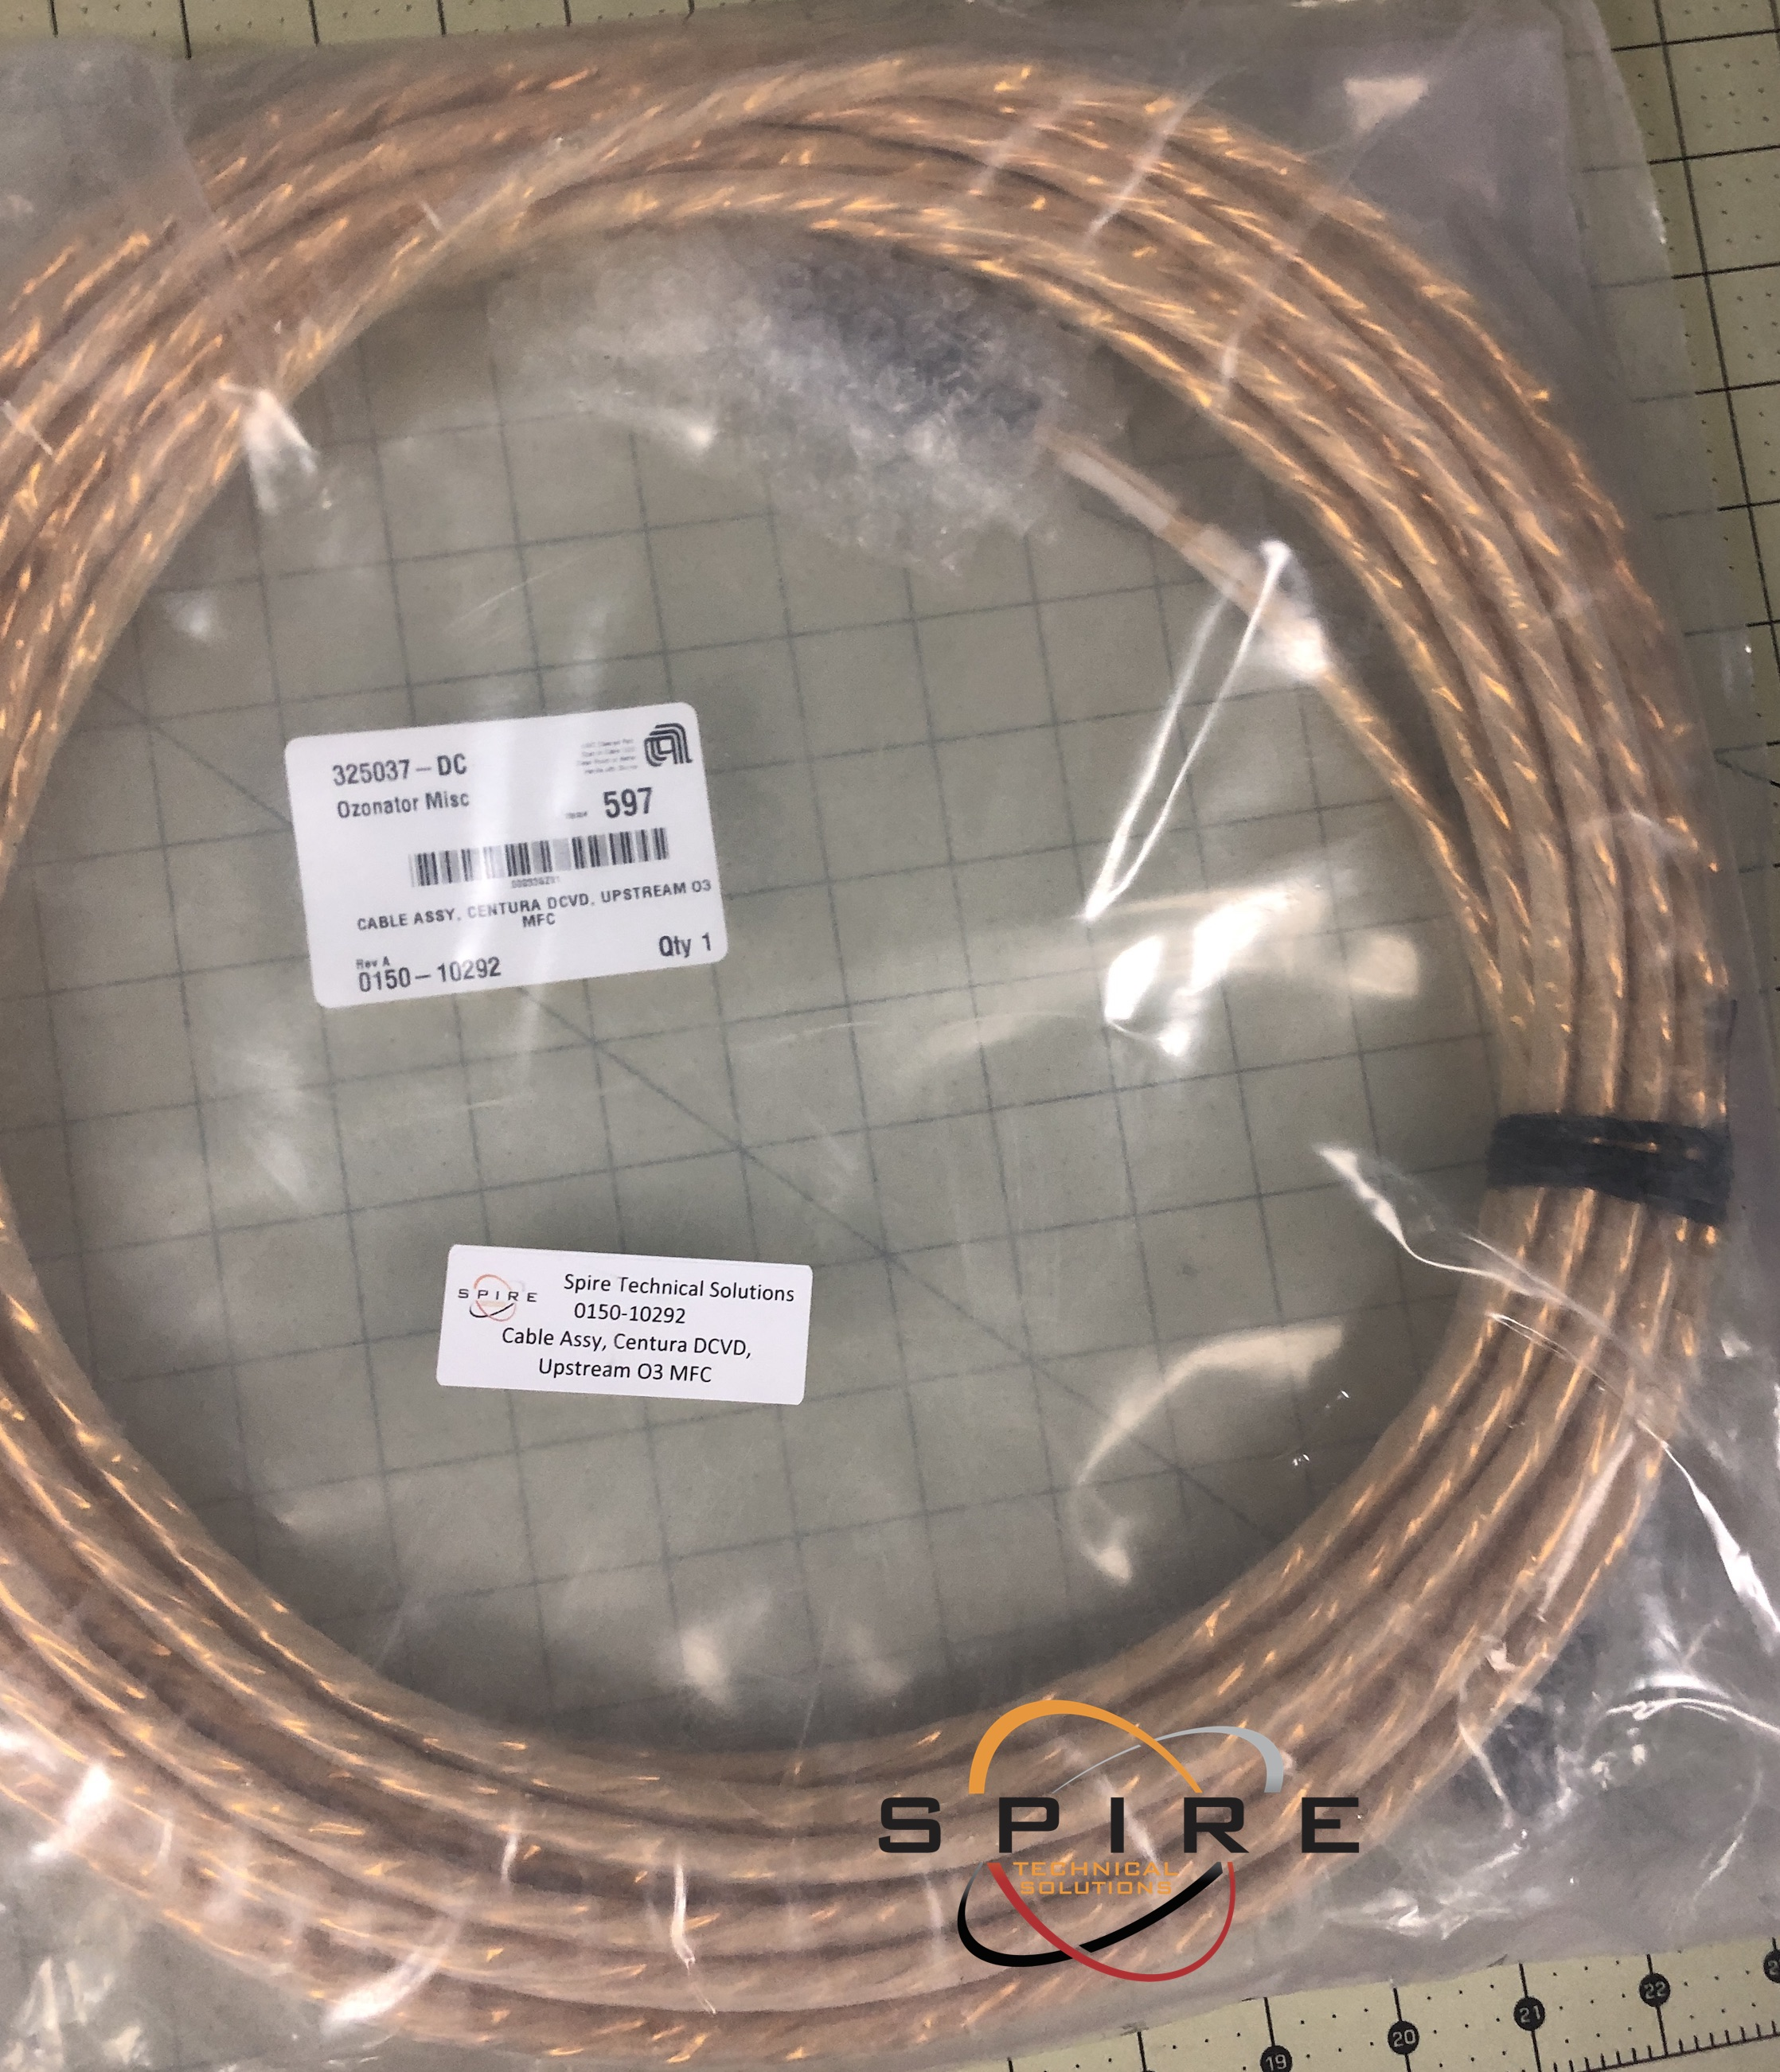 Cable Assy, Centura DCVD, Upstream O3 MFC